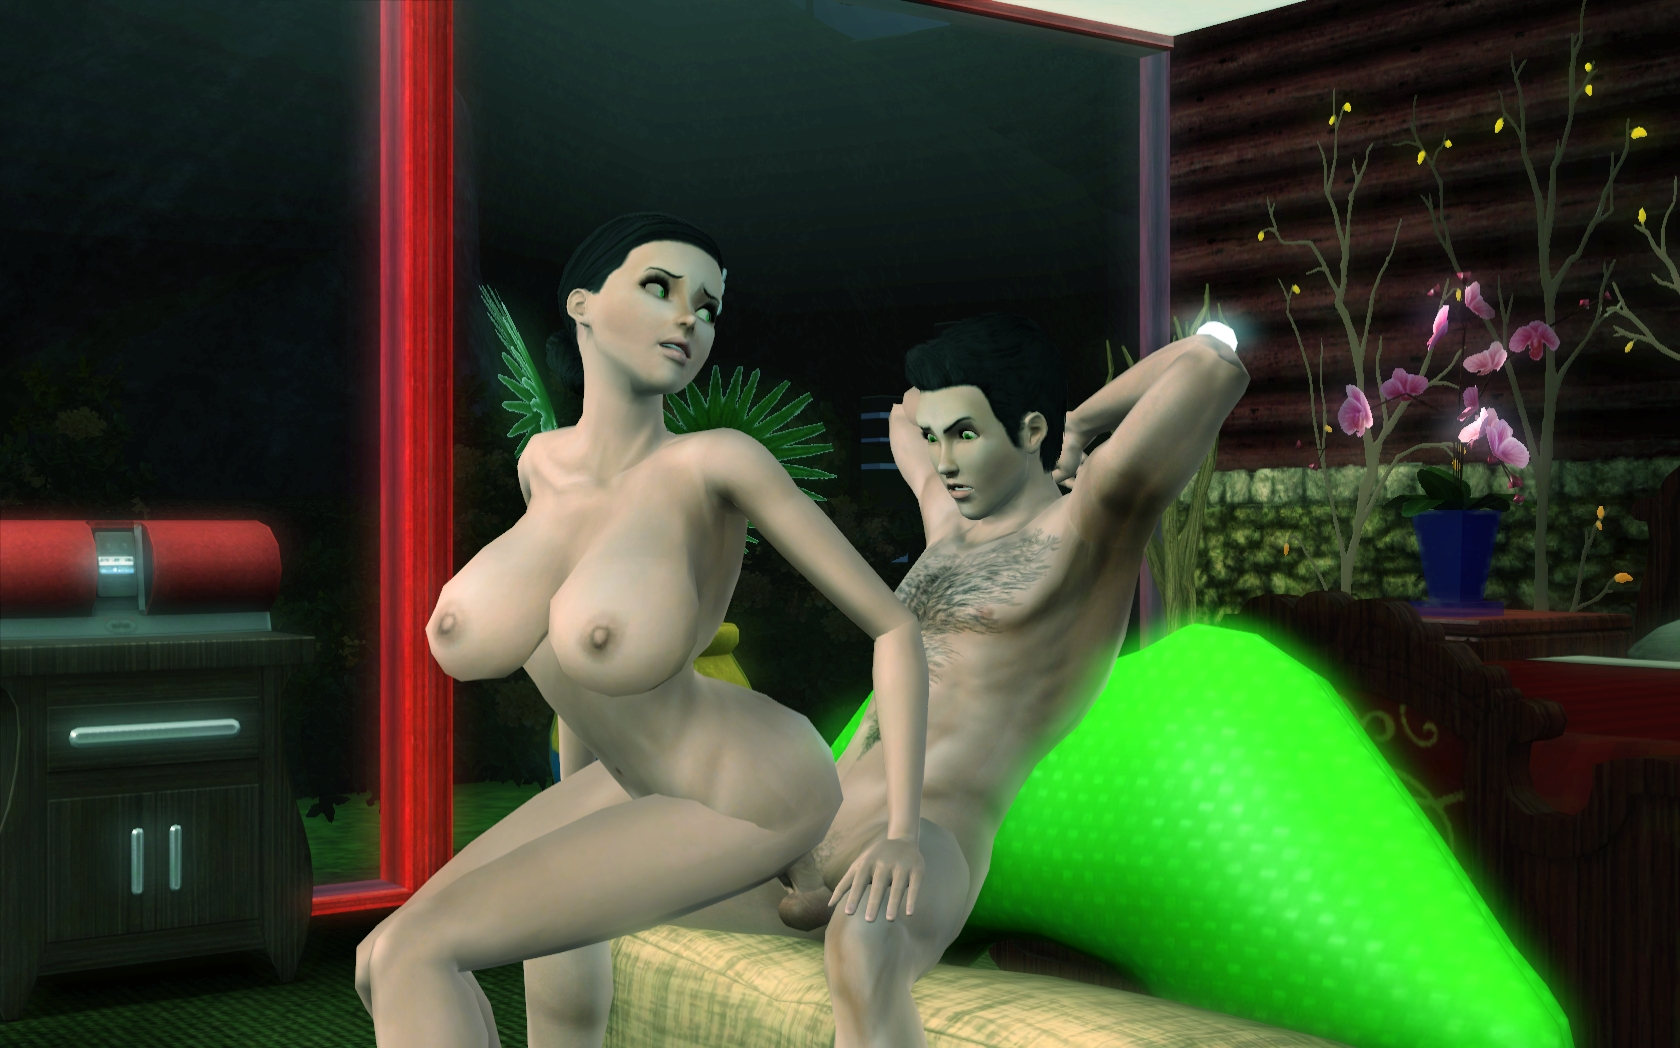 The sims 3 porno mod fucks movie